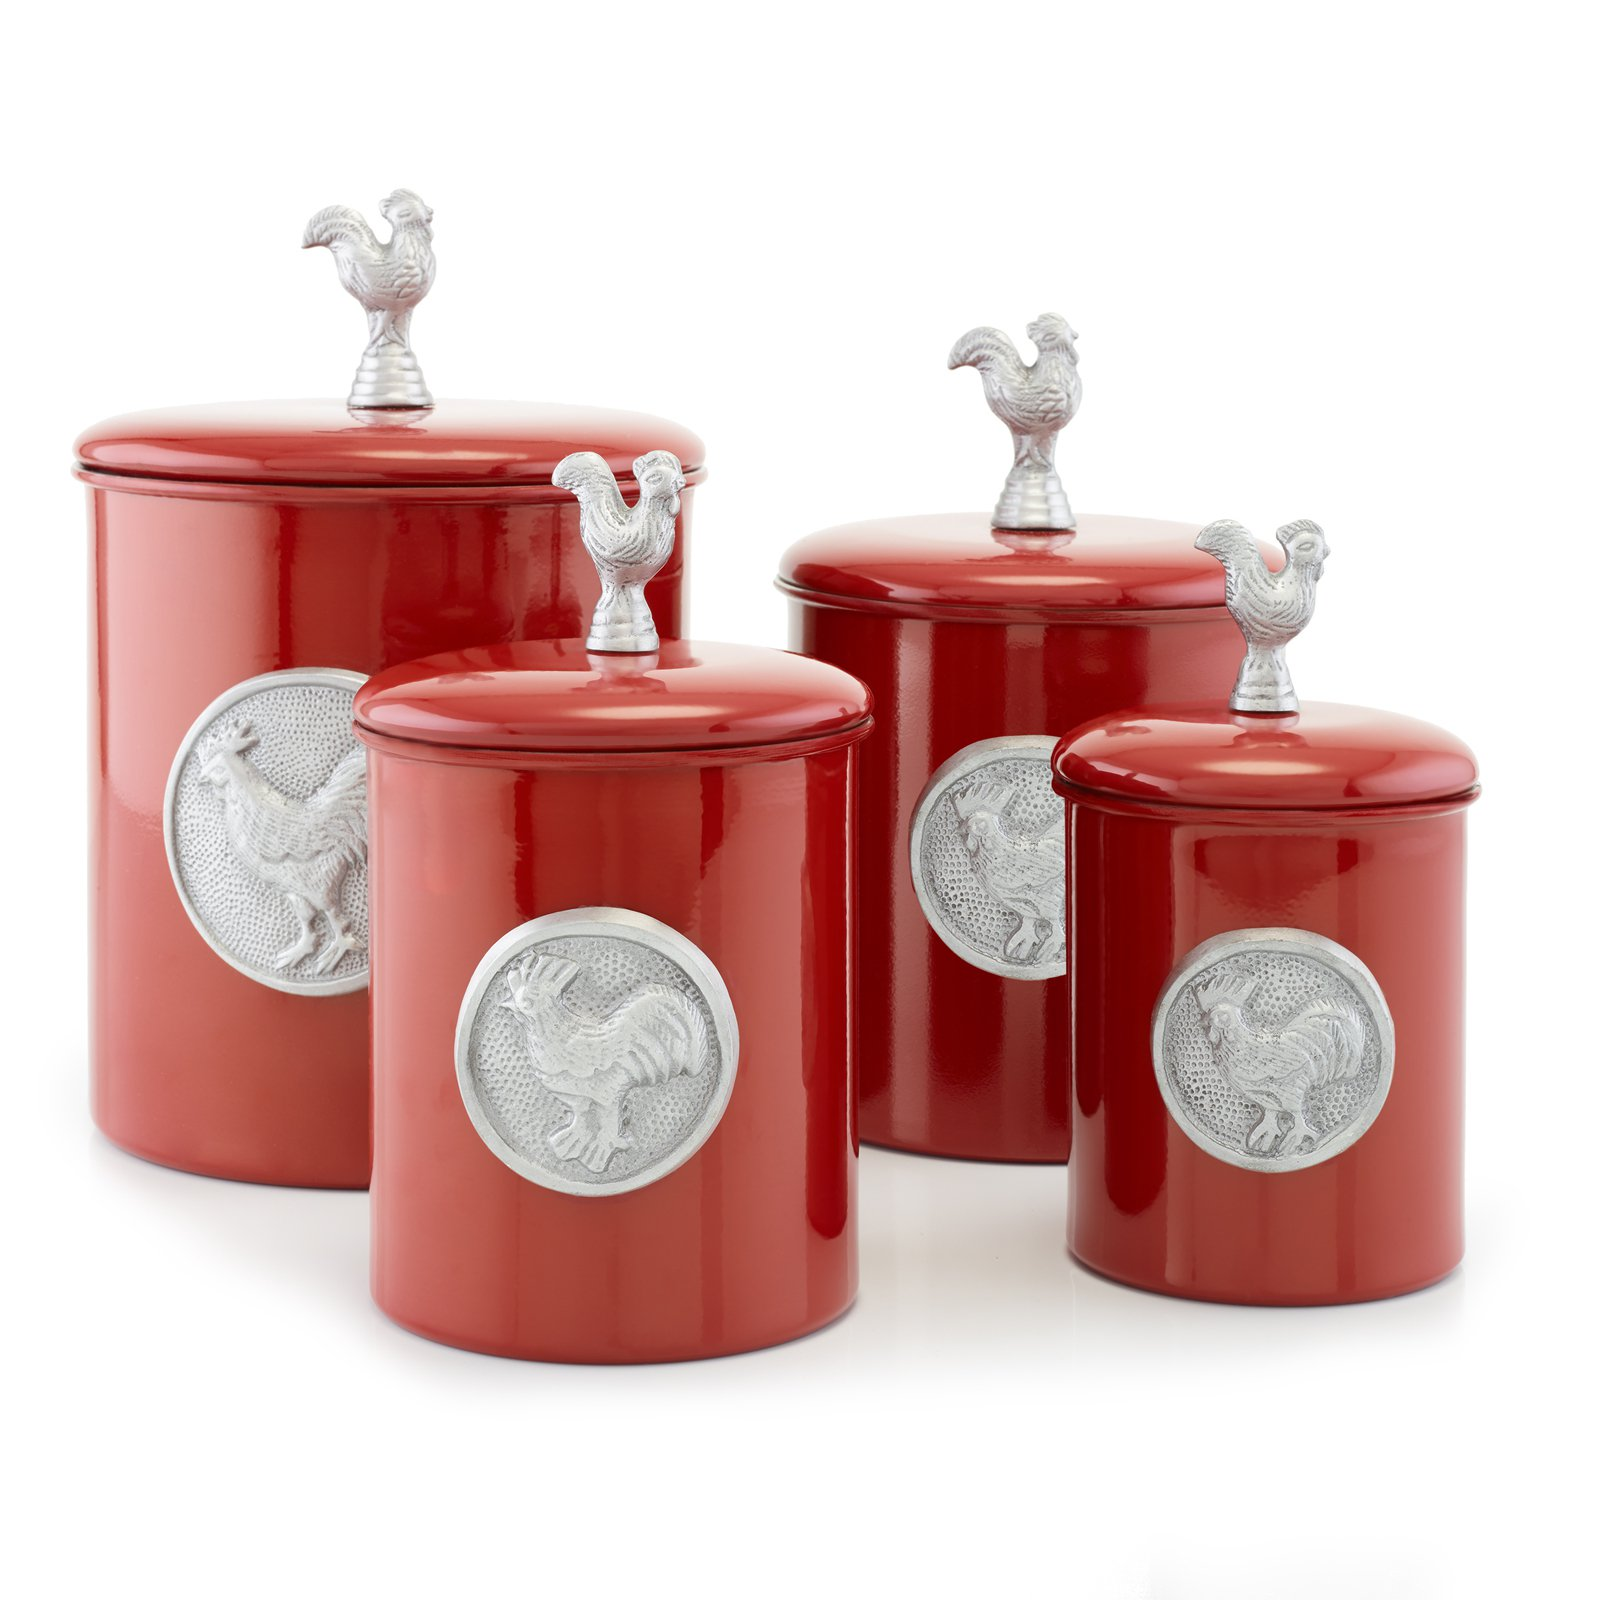 """4 Piece """"Red Rooster"""" Canister Set w/Rooster Medallion & Knob, Fresh Seal Covers - 4 Qt., 2 Qt., 1½ Qt., 1 Qt."""